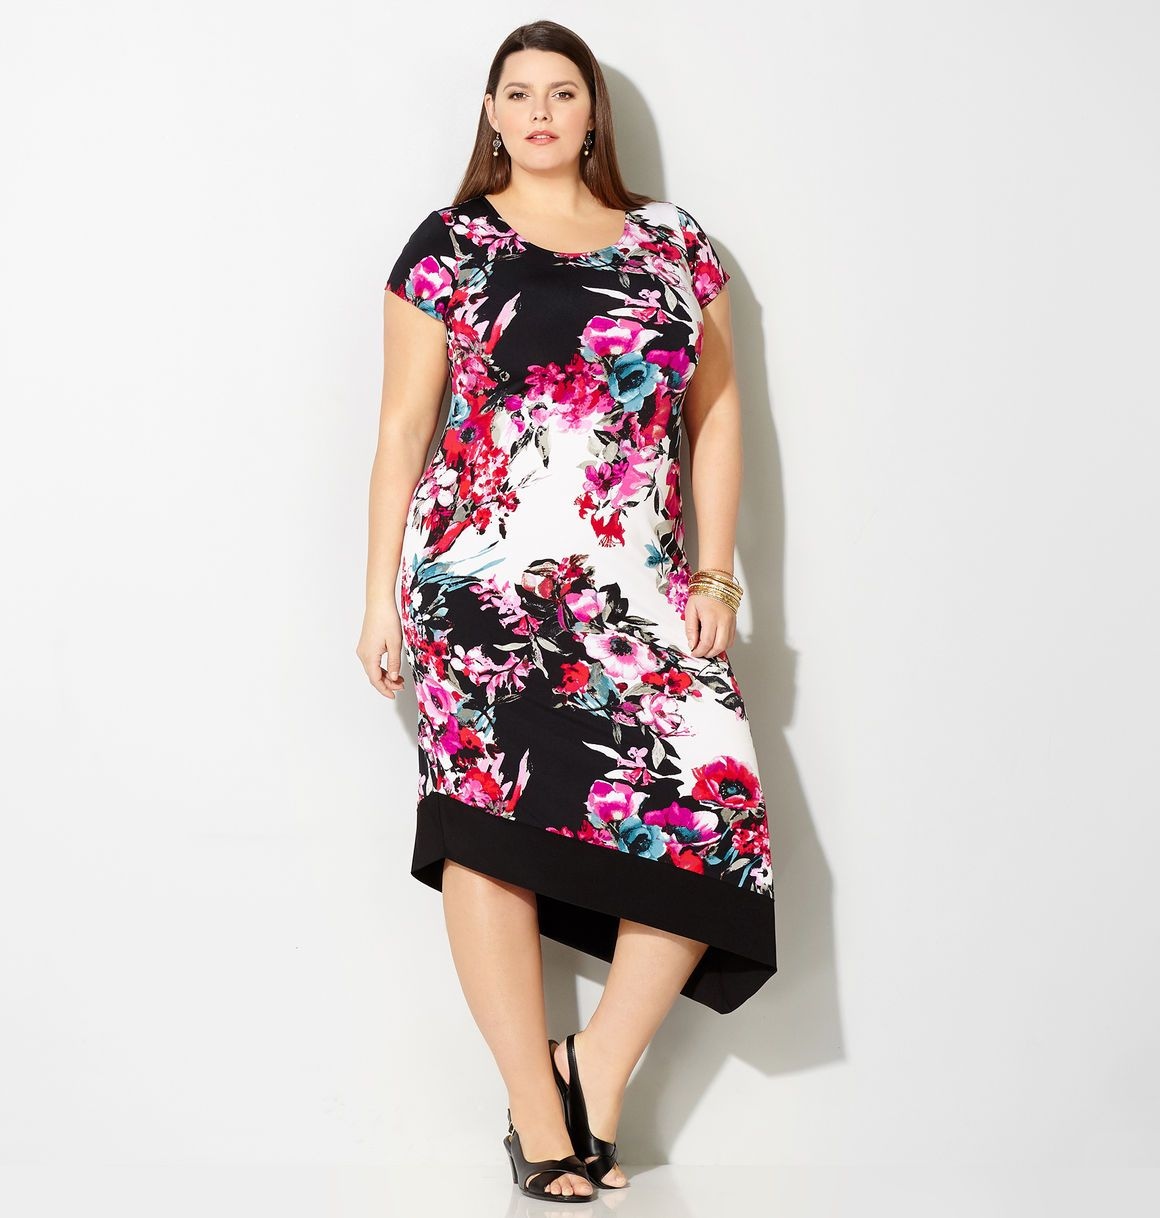 Shop new plus size spring dresses in sizes 14-32 like the Pink Floral  Asymmetrical Sheath available online at Traveller Location. Avenue Store